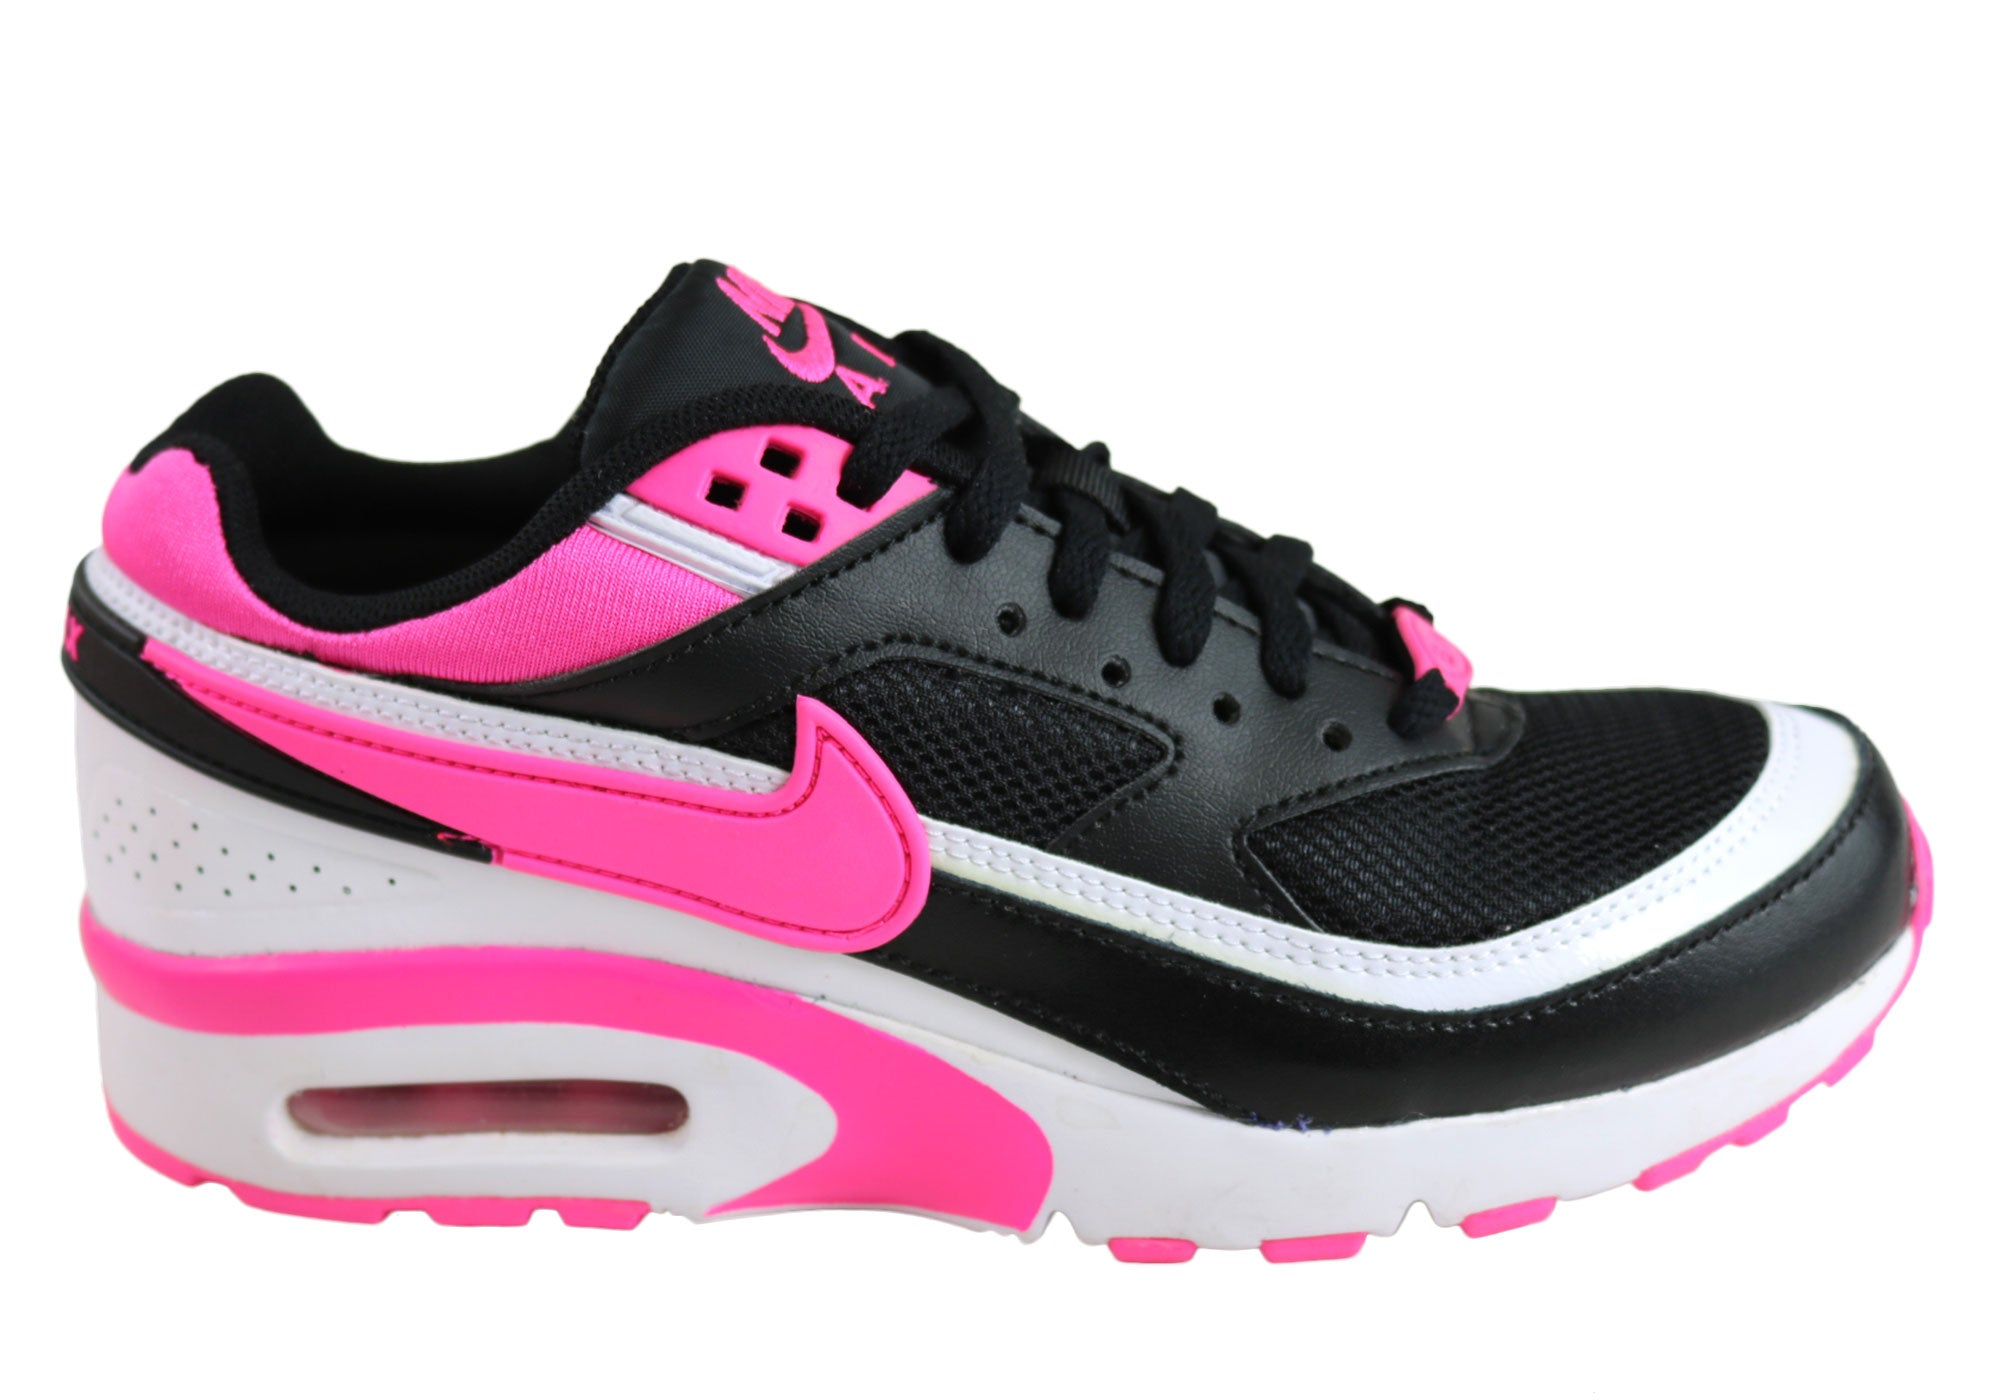 79efe00322e Details about New Nike Air Max Bw Older Girls Kids Sports Shoes Trainers